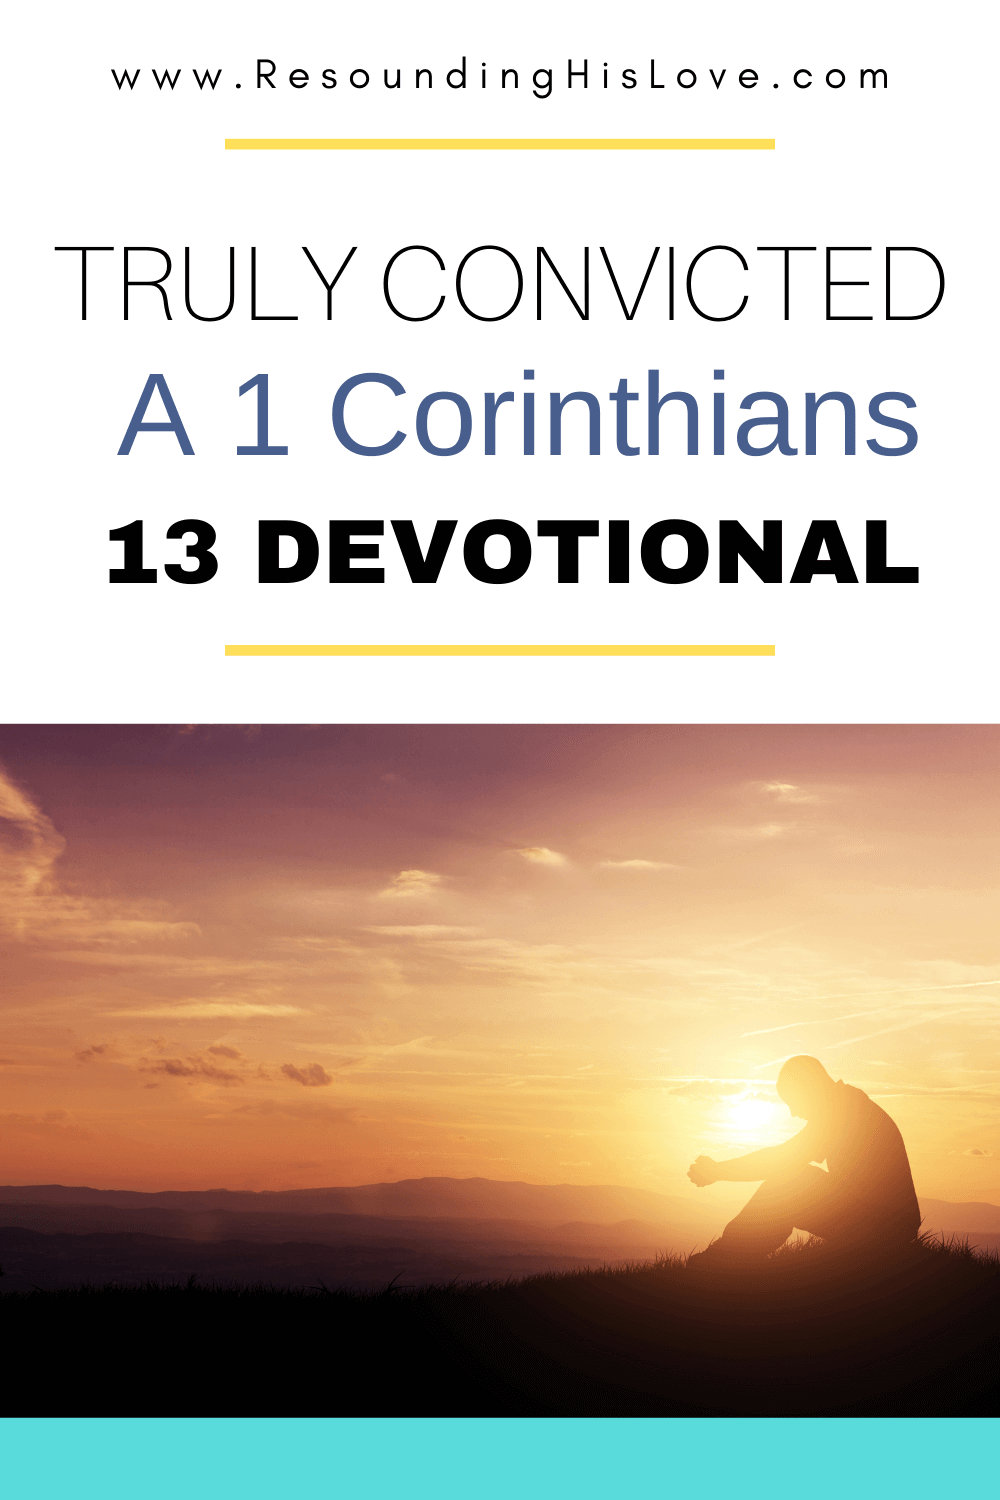 a person sitting on the grass with arms on legs in a sunset background Truly Convicted: A 1 Corinthians 13 Devotional